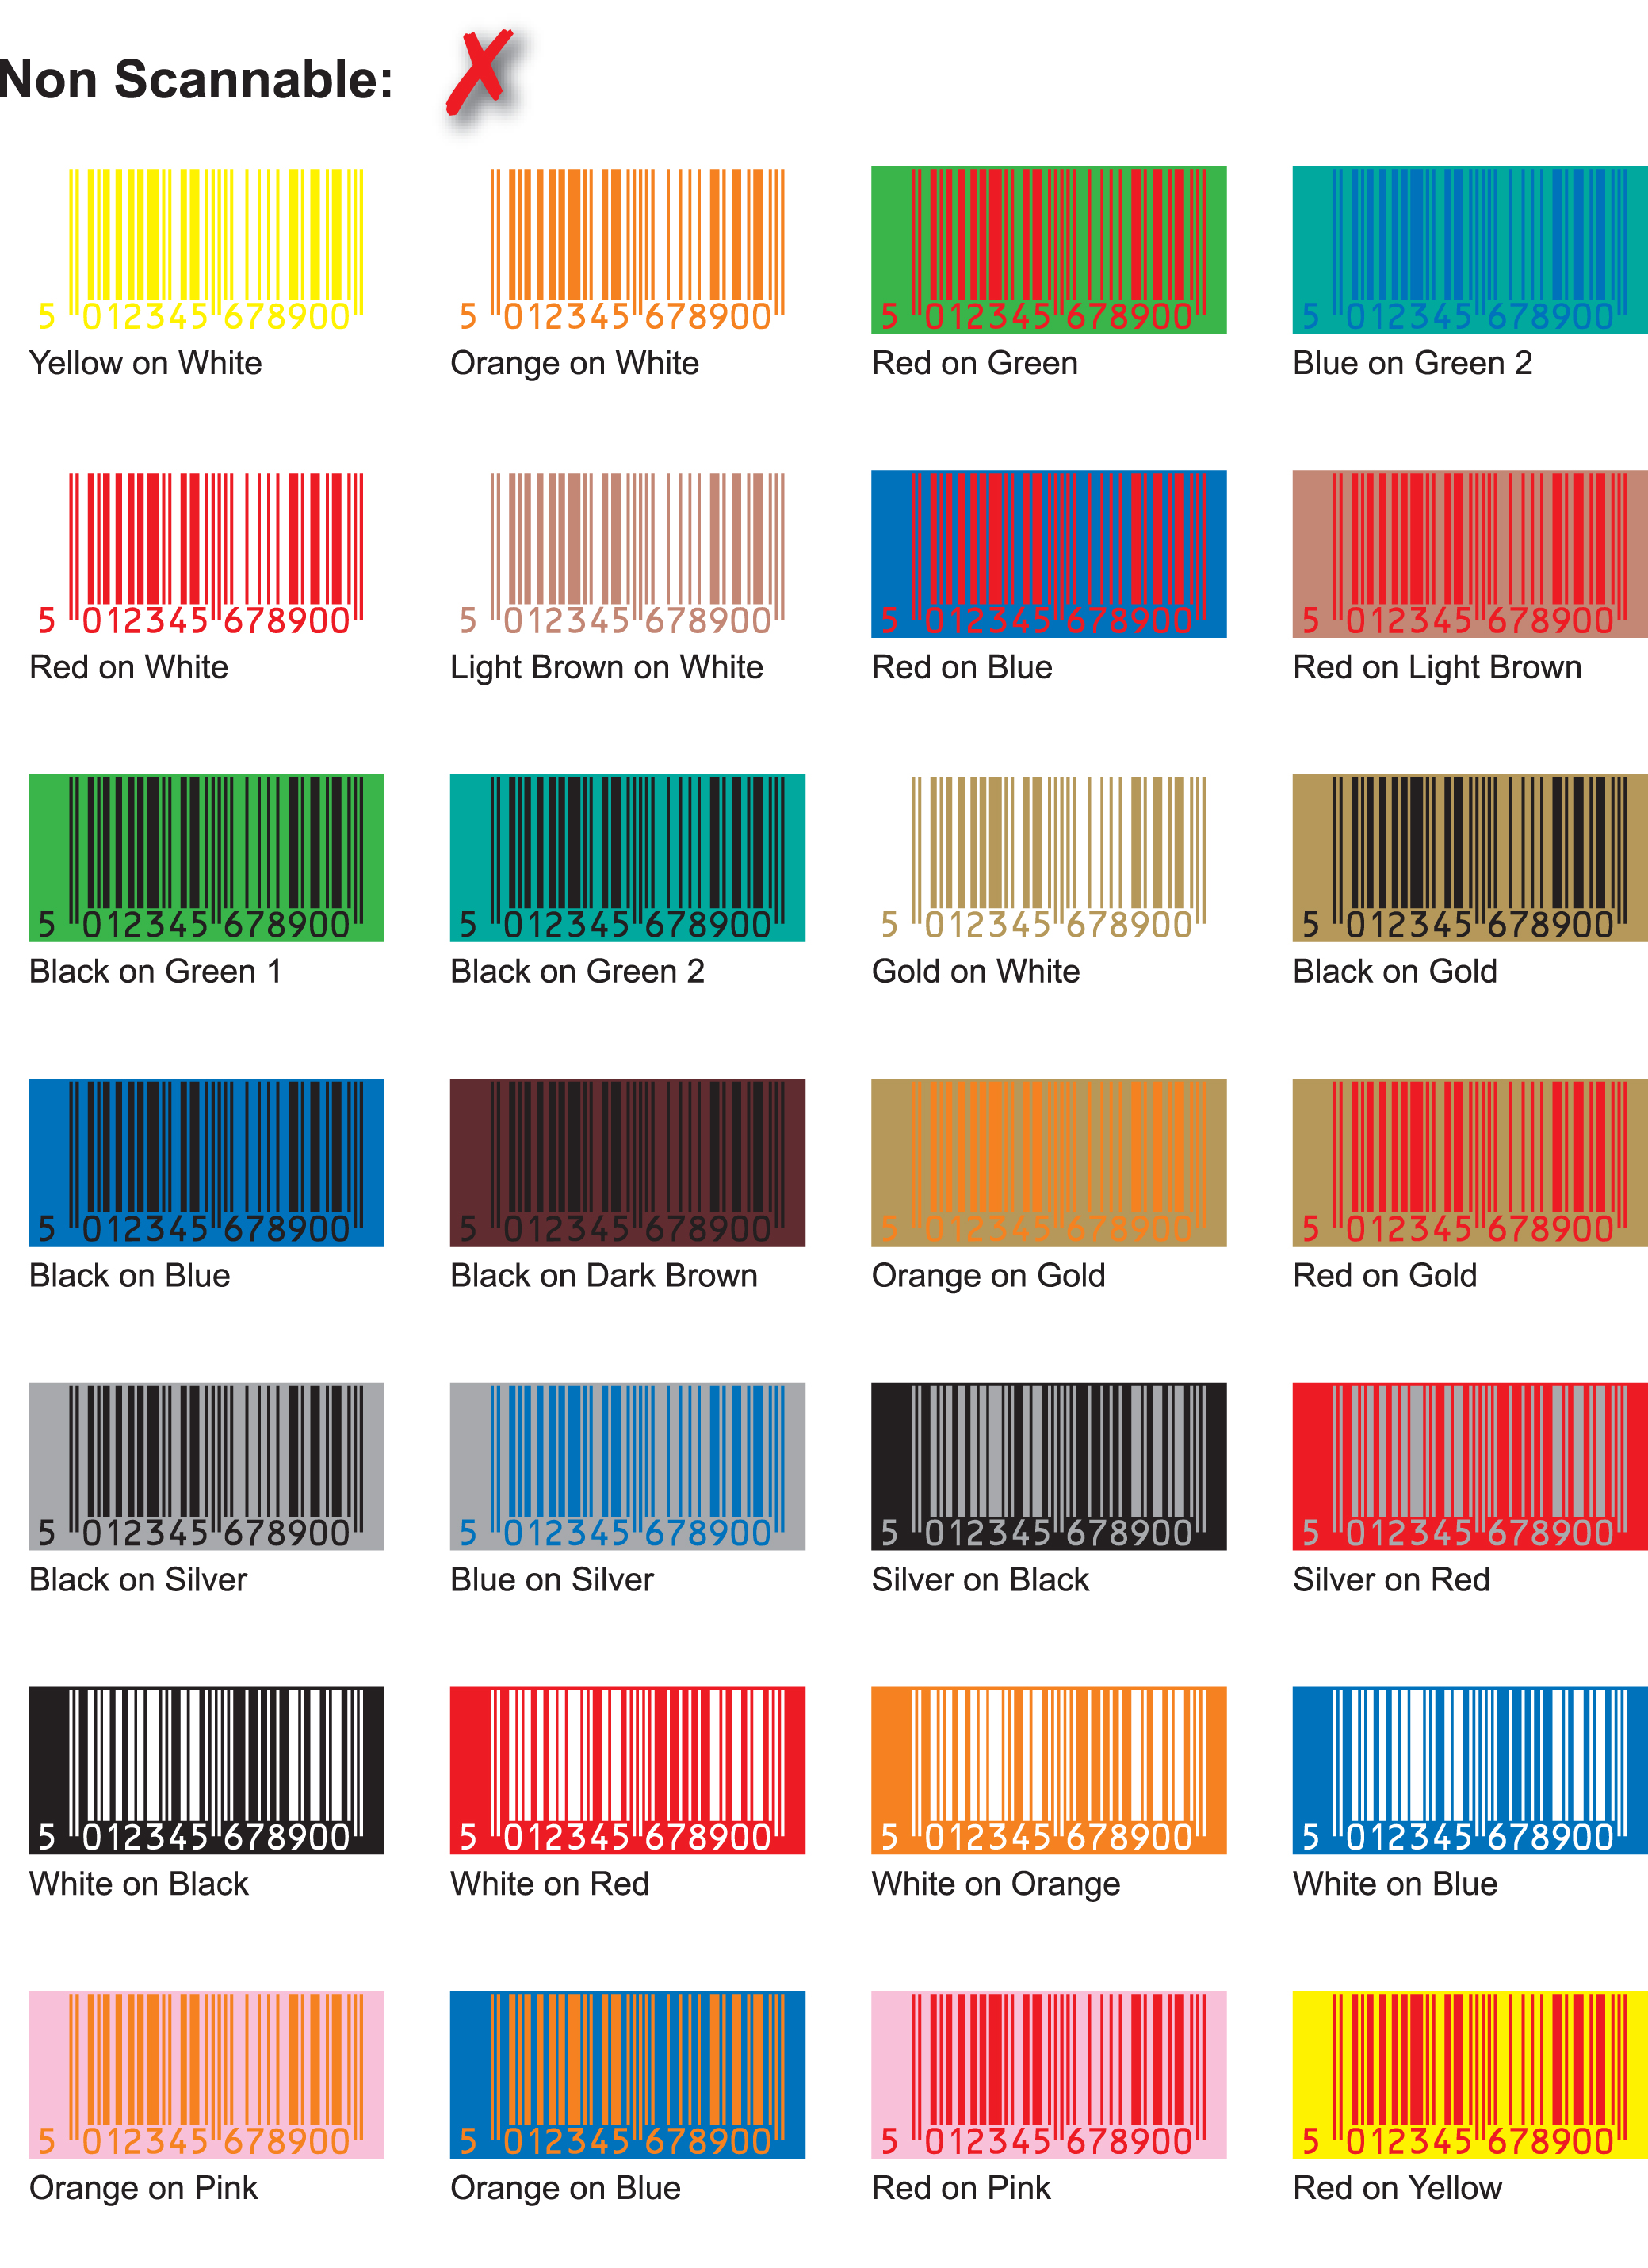 Non-scannable barcode colour combinations